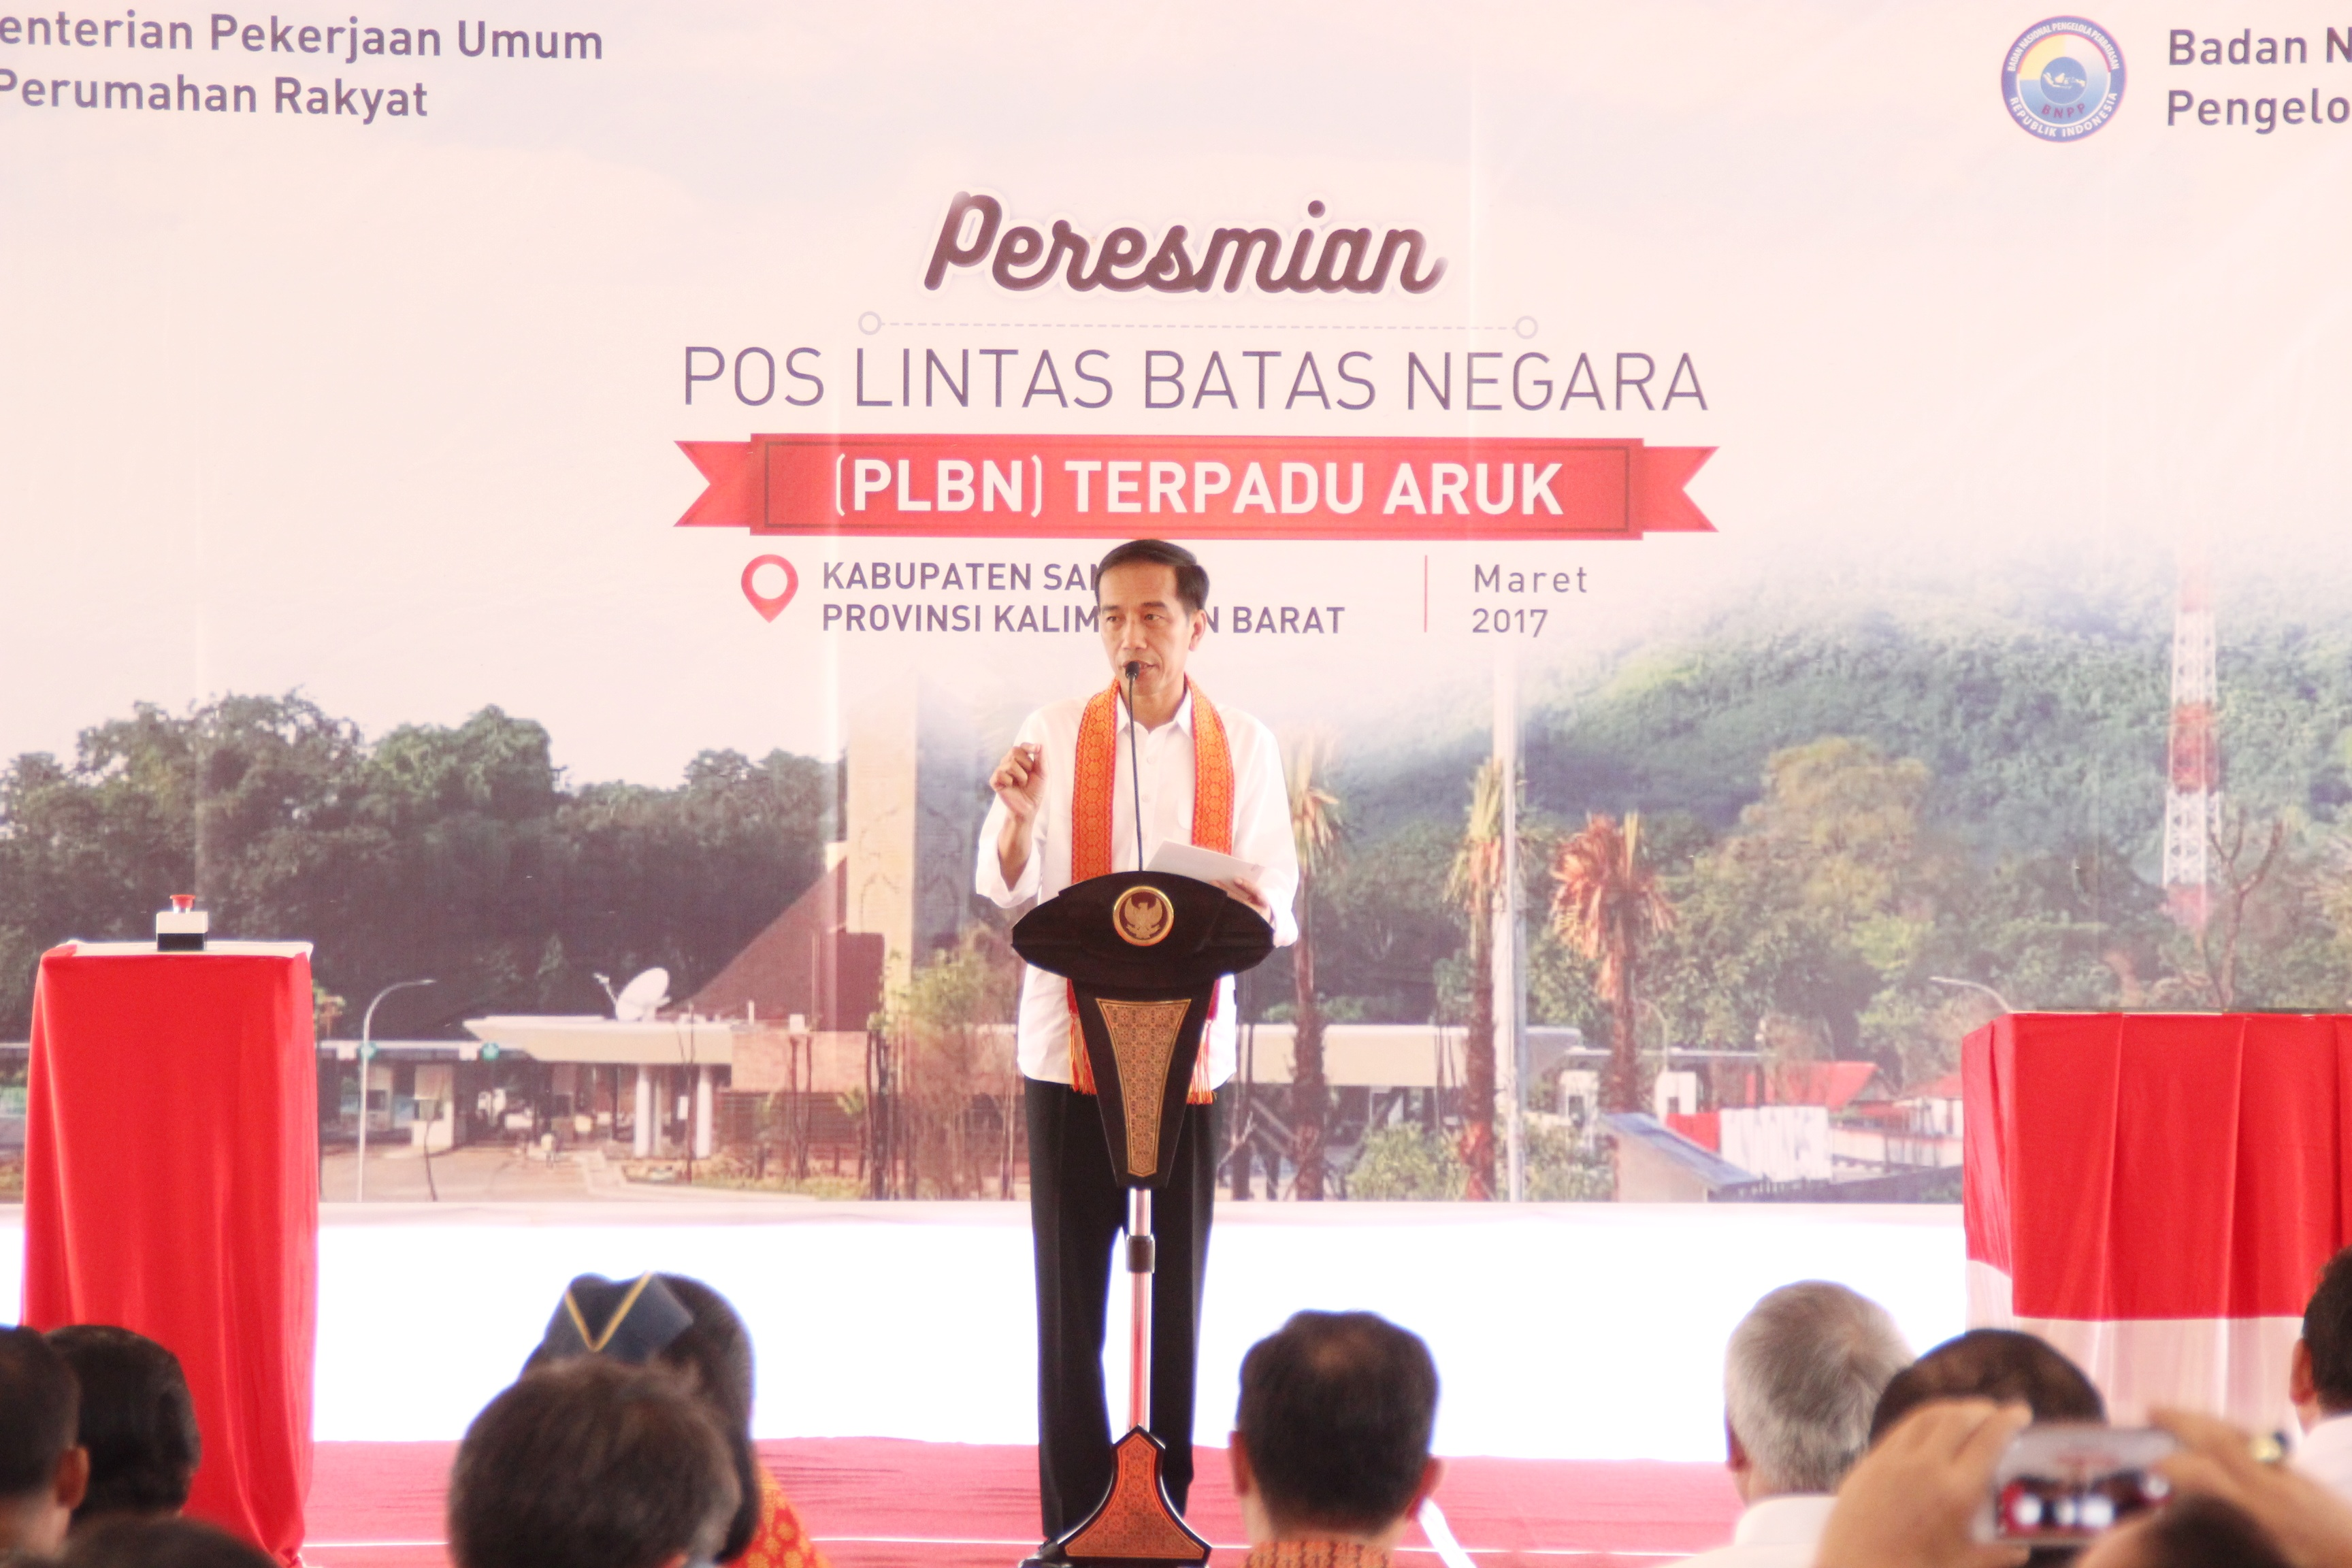 President Jokowi delivers a remarks during the inauguration ceremony of Aruk border post in Sambas Regency, West Kalimantan, Friday (17/3). (Public Relations Division/Anggun)